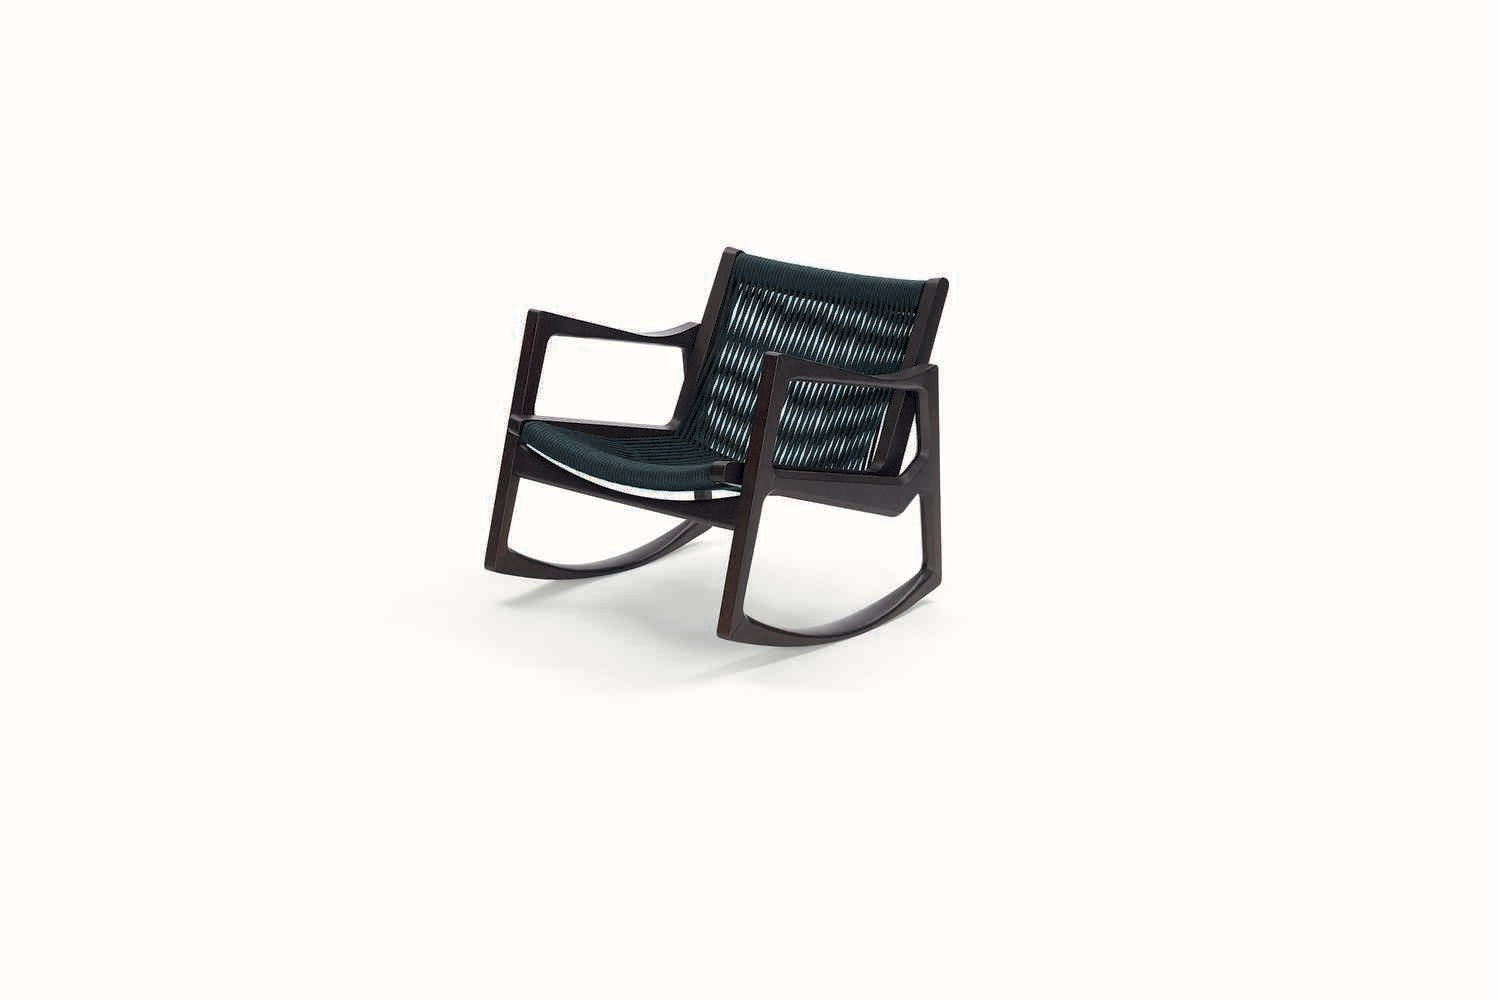 Euvira Rocking Chair by Jader Almeida for ClassiCon